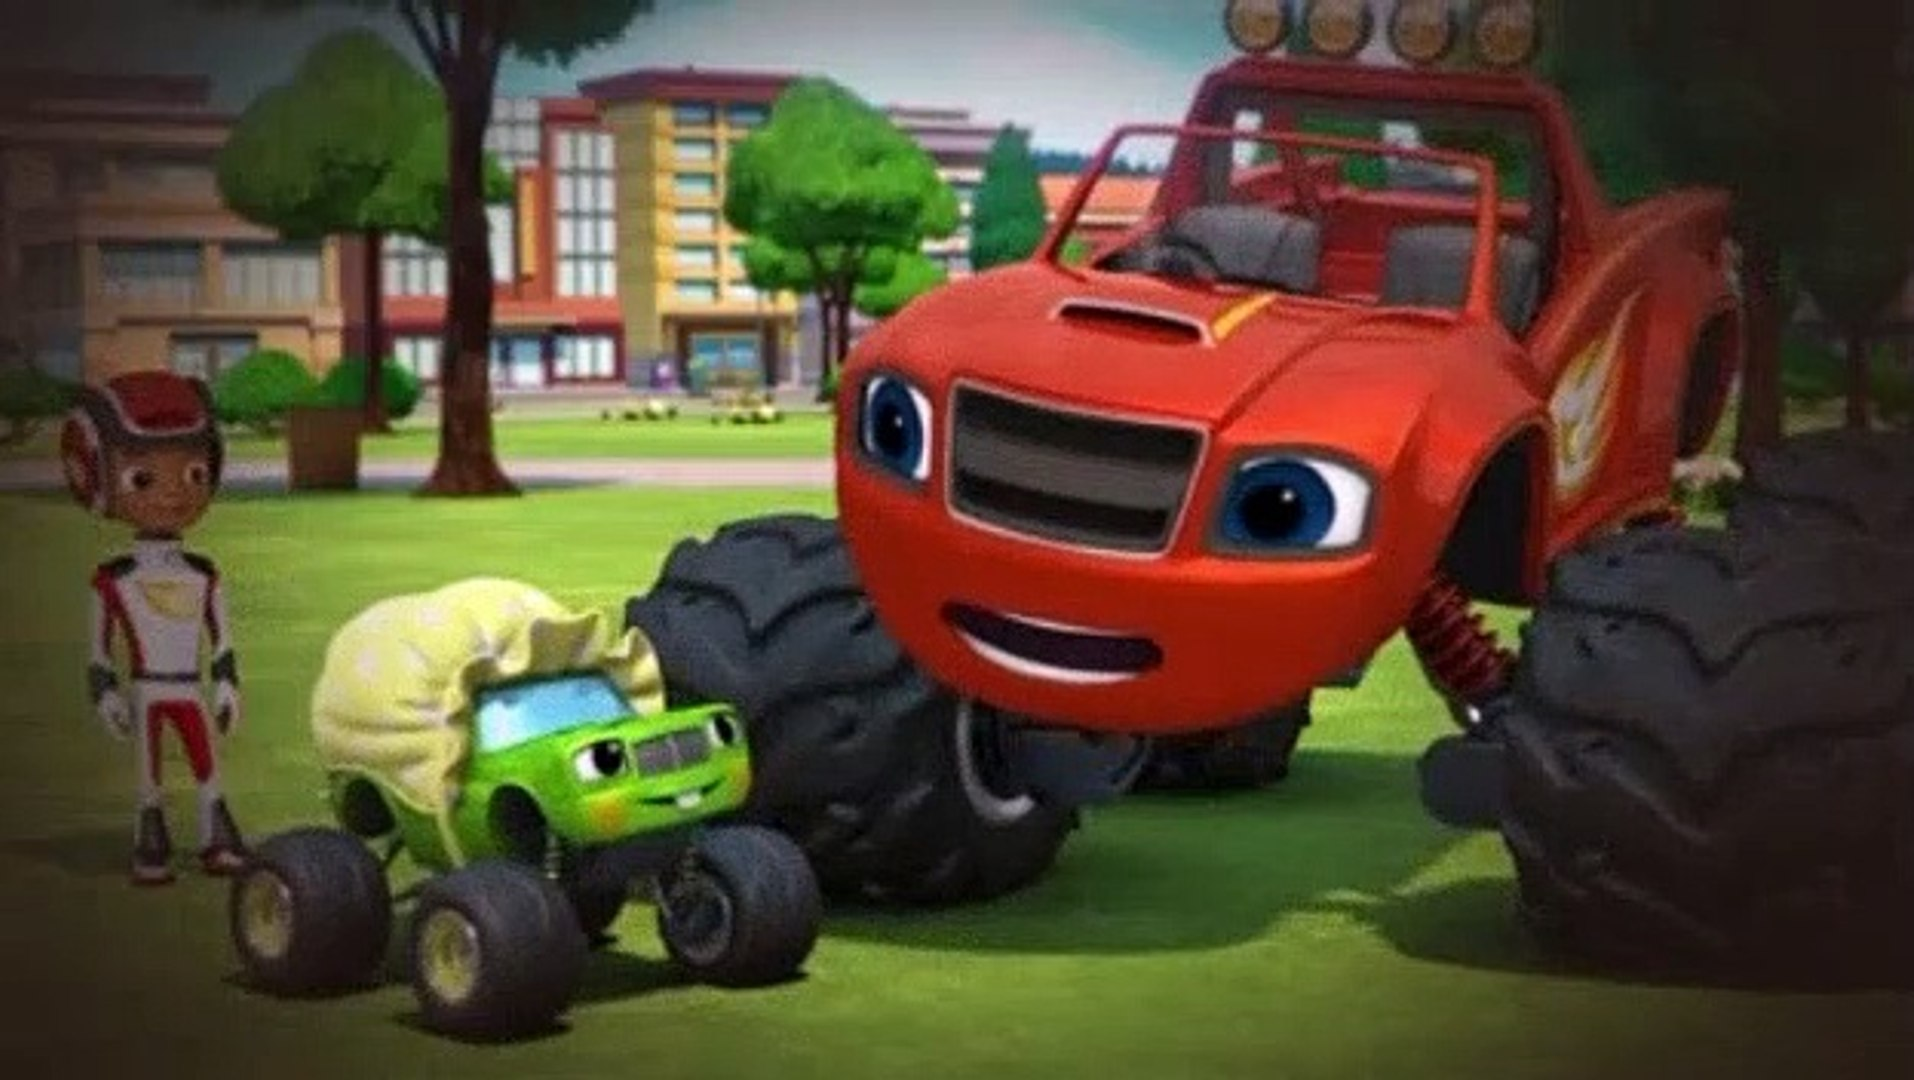 Blaze And The Monster Machines S05e12 Blazing Amazing Stories Video Dailymotion